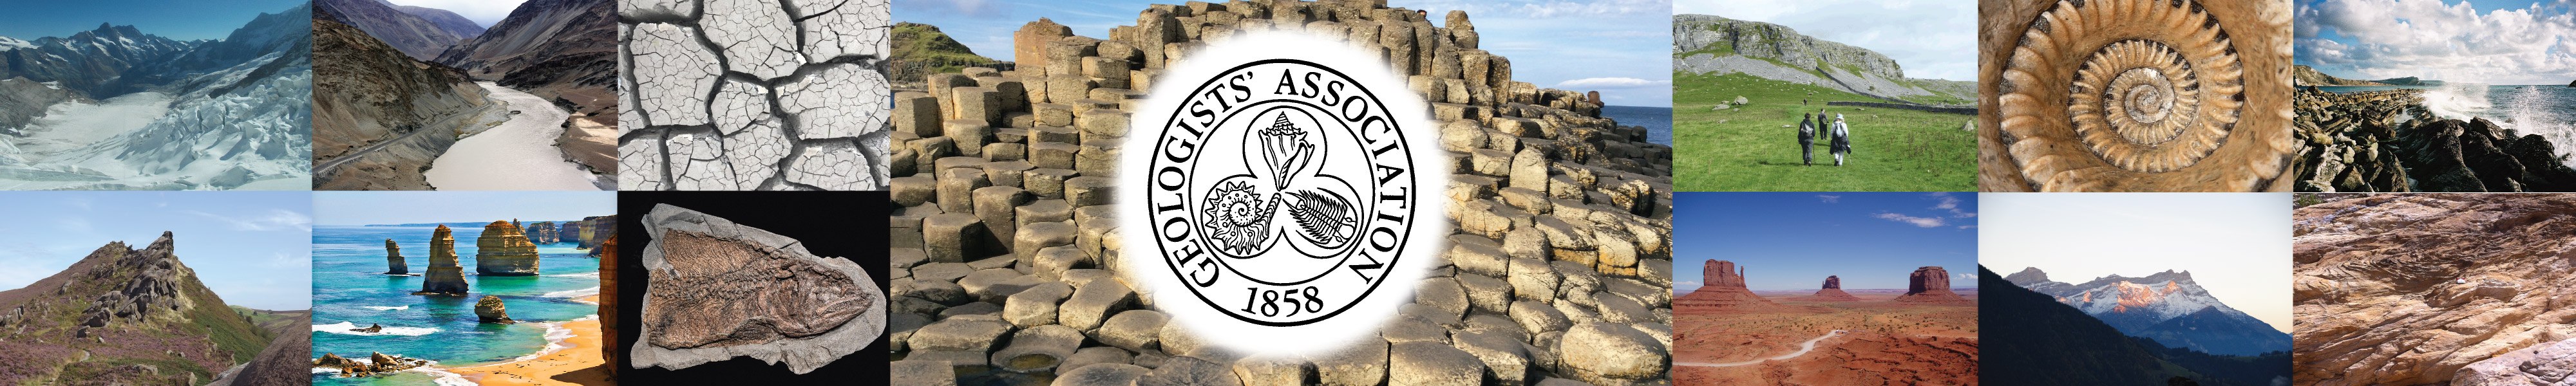 Geologists' Association